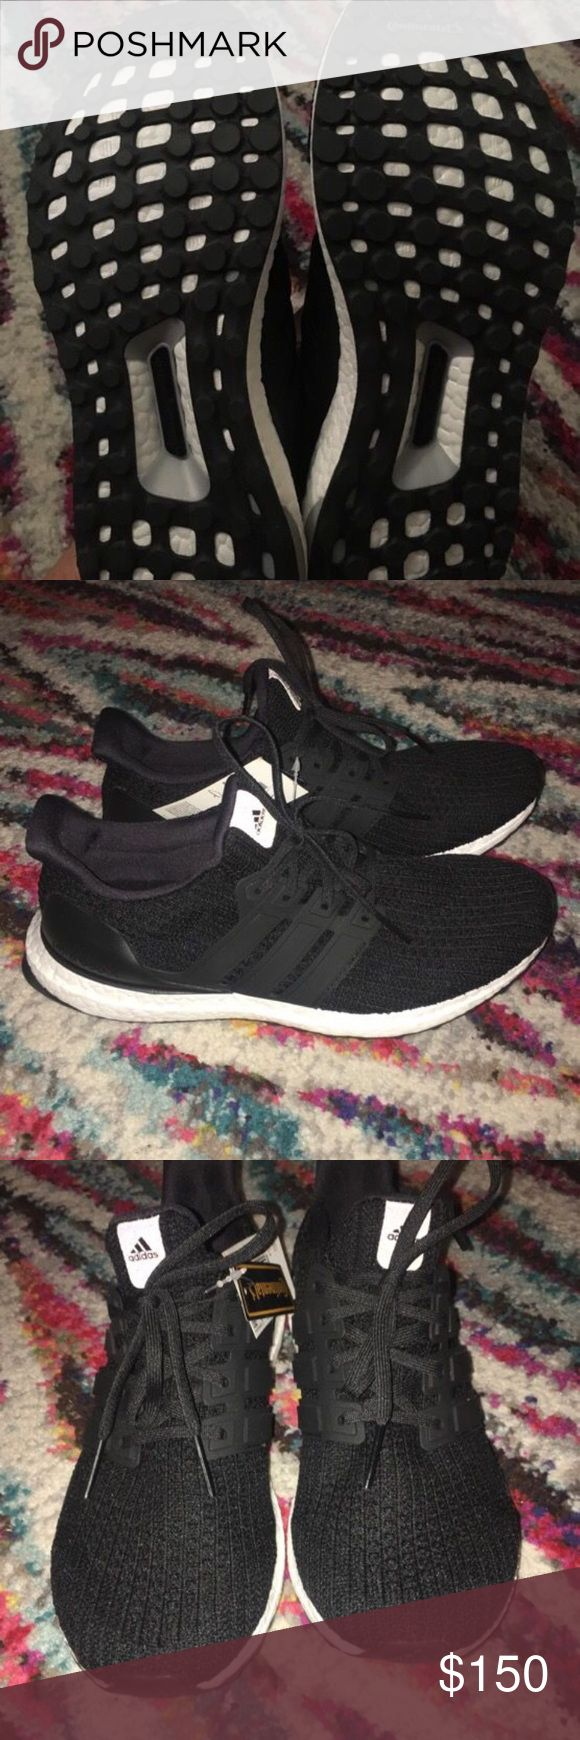 Adidas Ultra Boosts Women's brand new, never worn Adidas Ultra Boosts. Size 9, black - selling because they are too big for me and i can't find the receipt! adidas Shoes Athletic Shoes